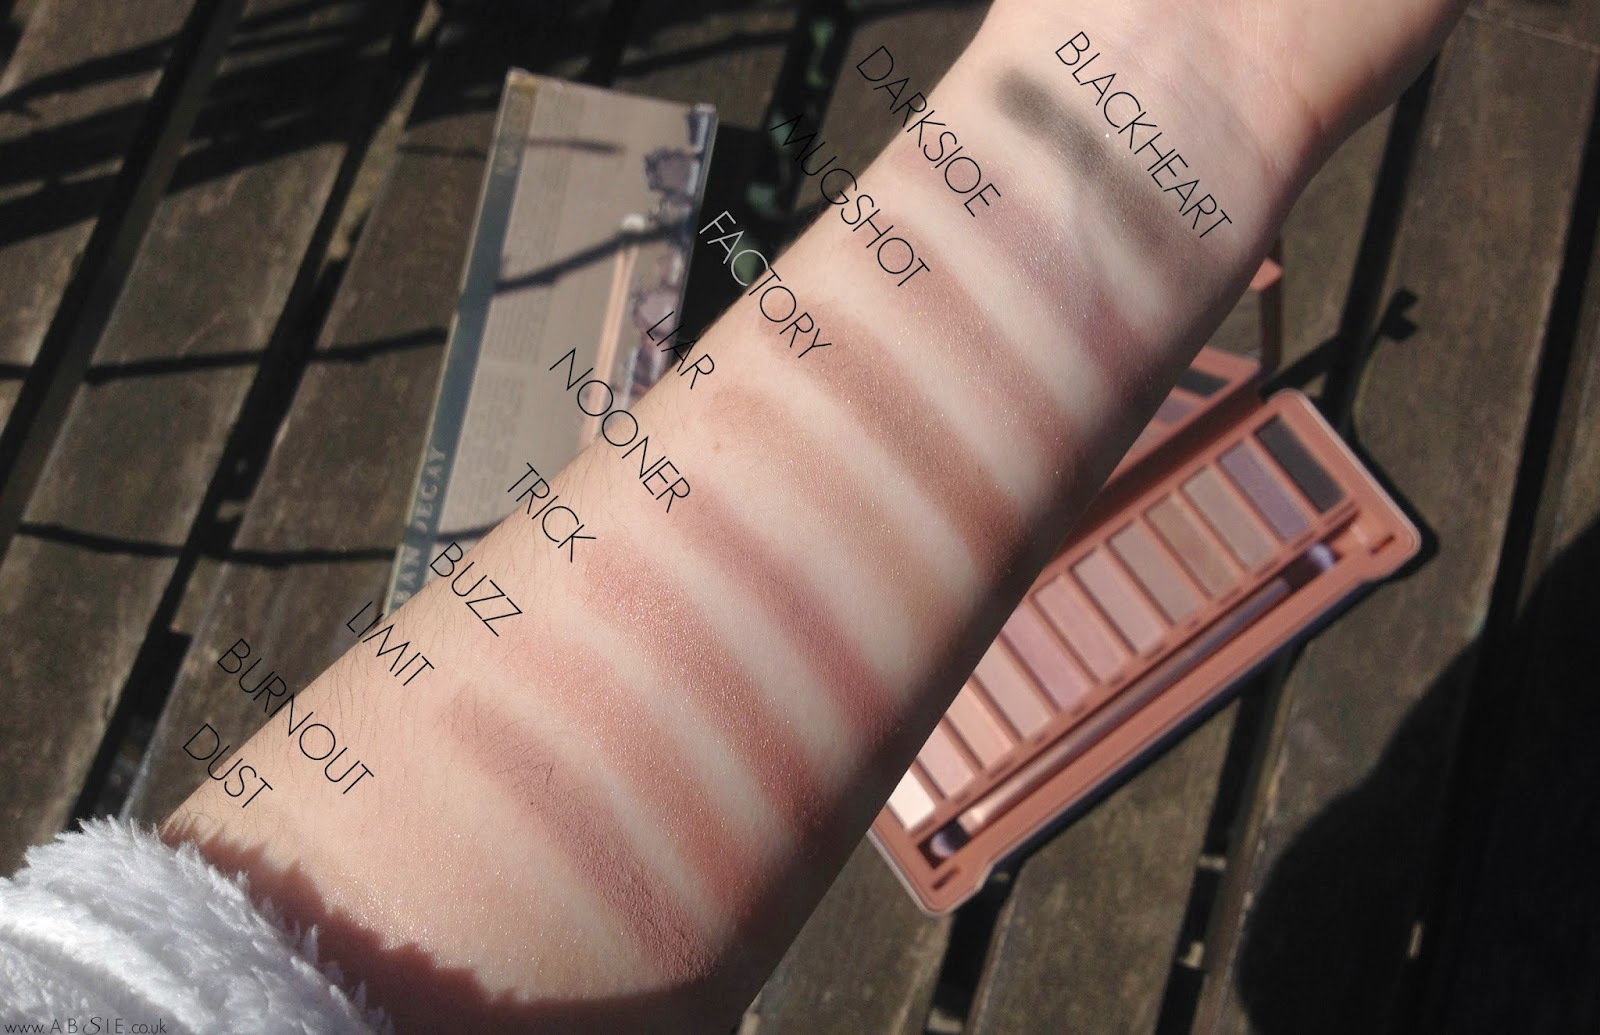 www.absie.co.uk: Urban Decay Naked 3 Palette | review + swatches